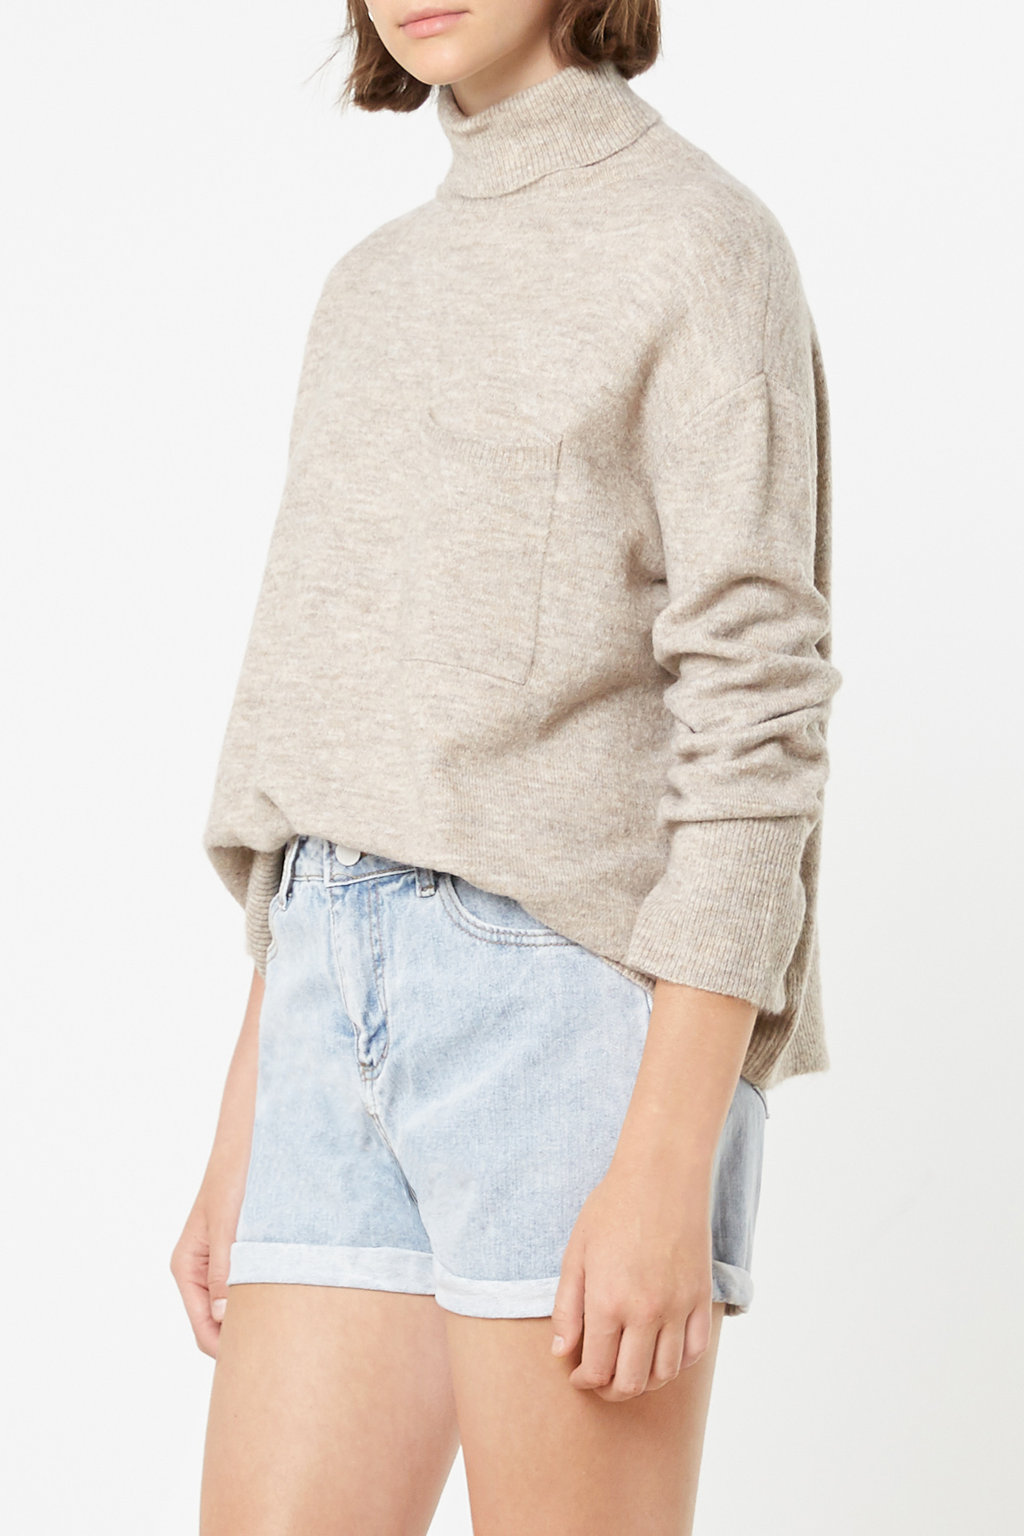 Sweater 2406 Taupe 2